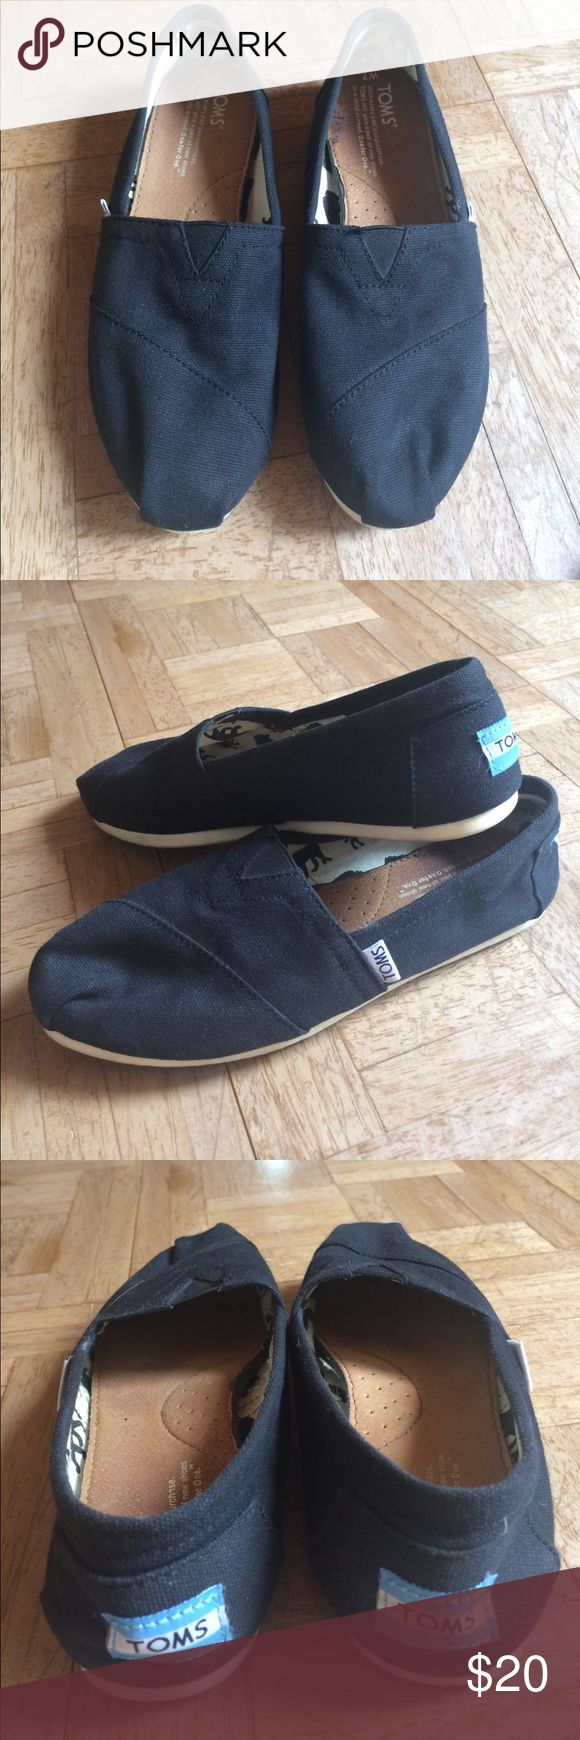 Toms Black Canvas Shoes Gently worn Toms canvas shoes. Size 7. Still in great shape with lots of life left! TOMS Shoes